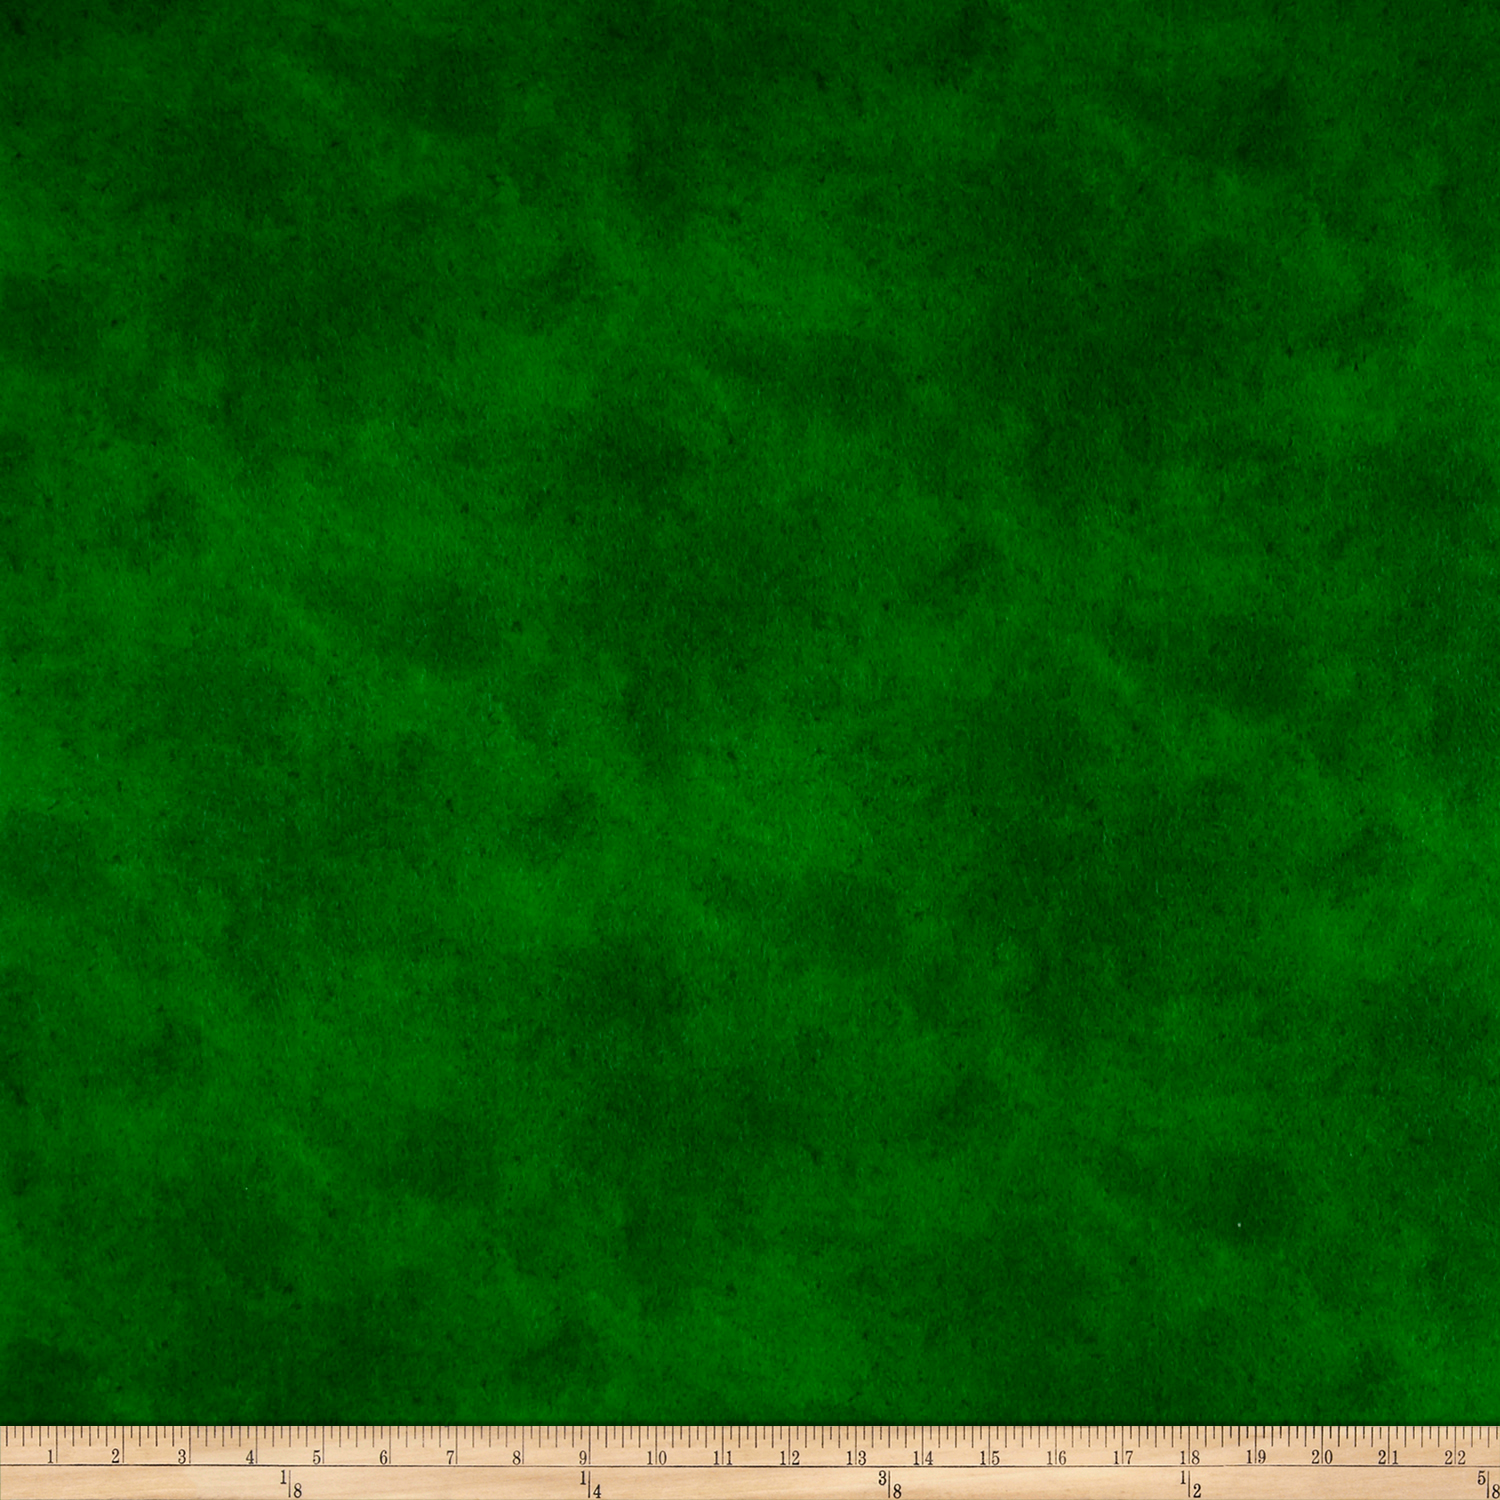 Suede Flannels Grass Green Fabric by P & B in USA